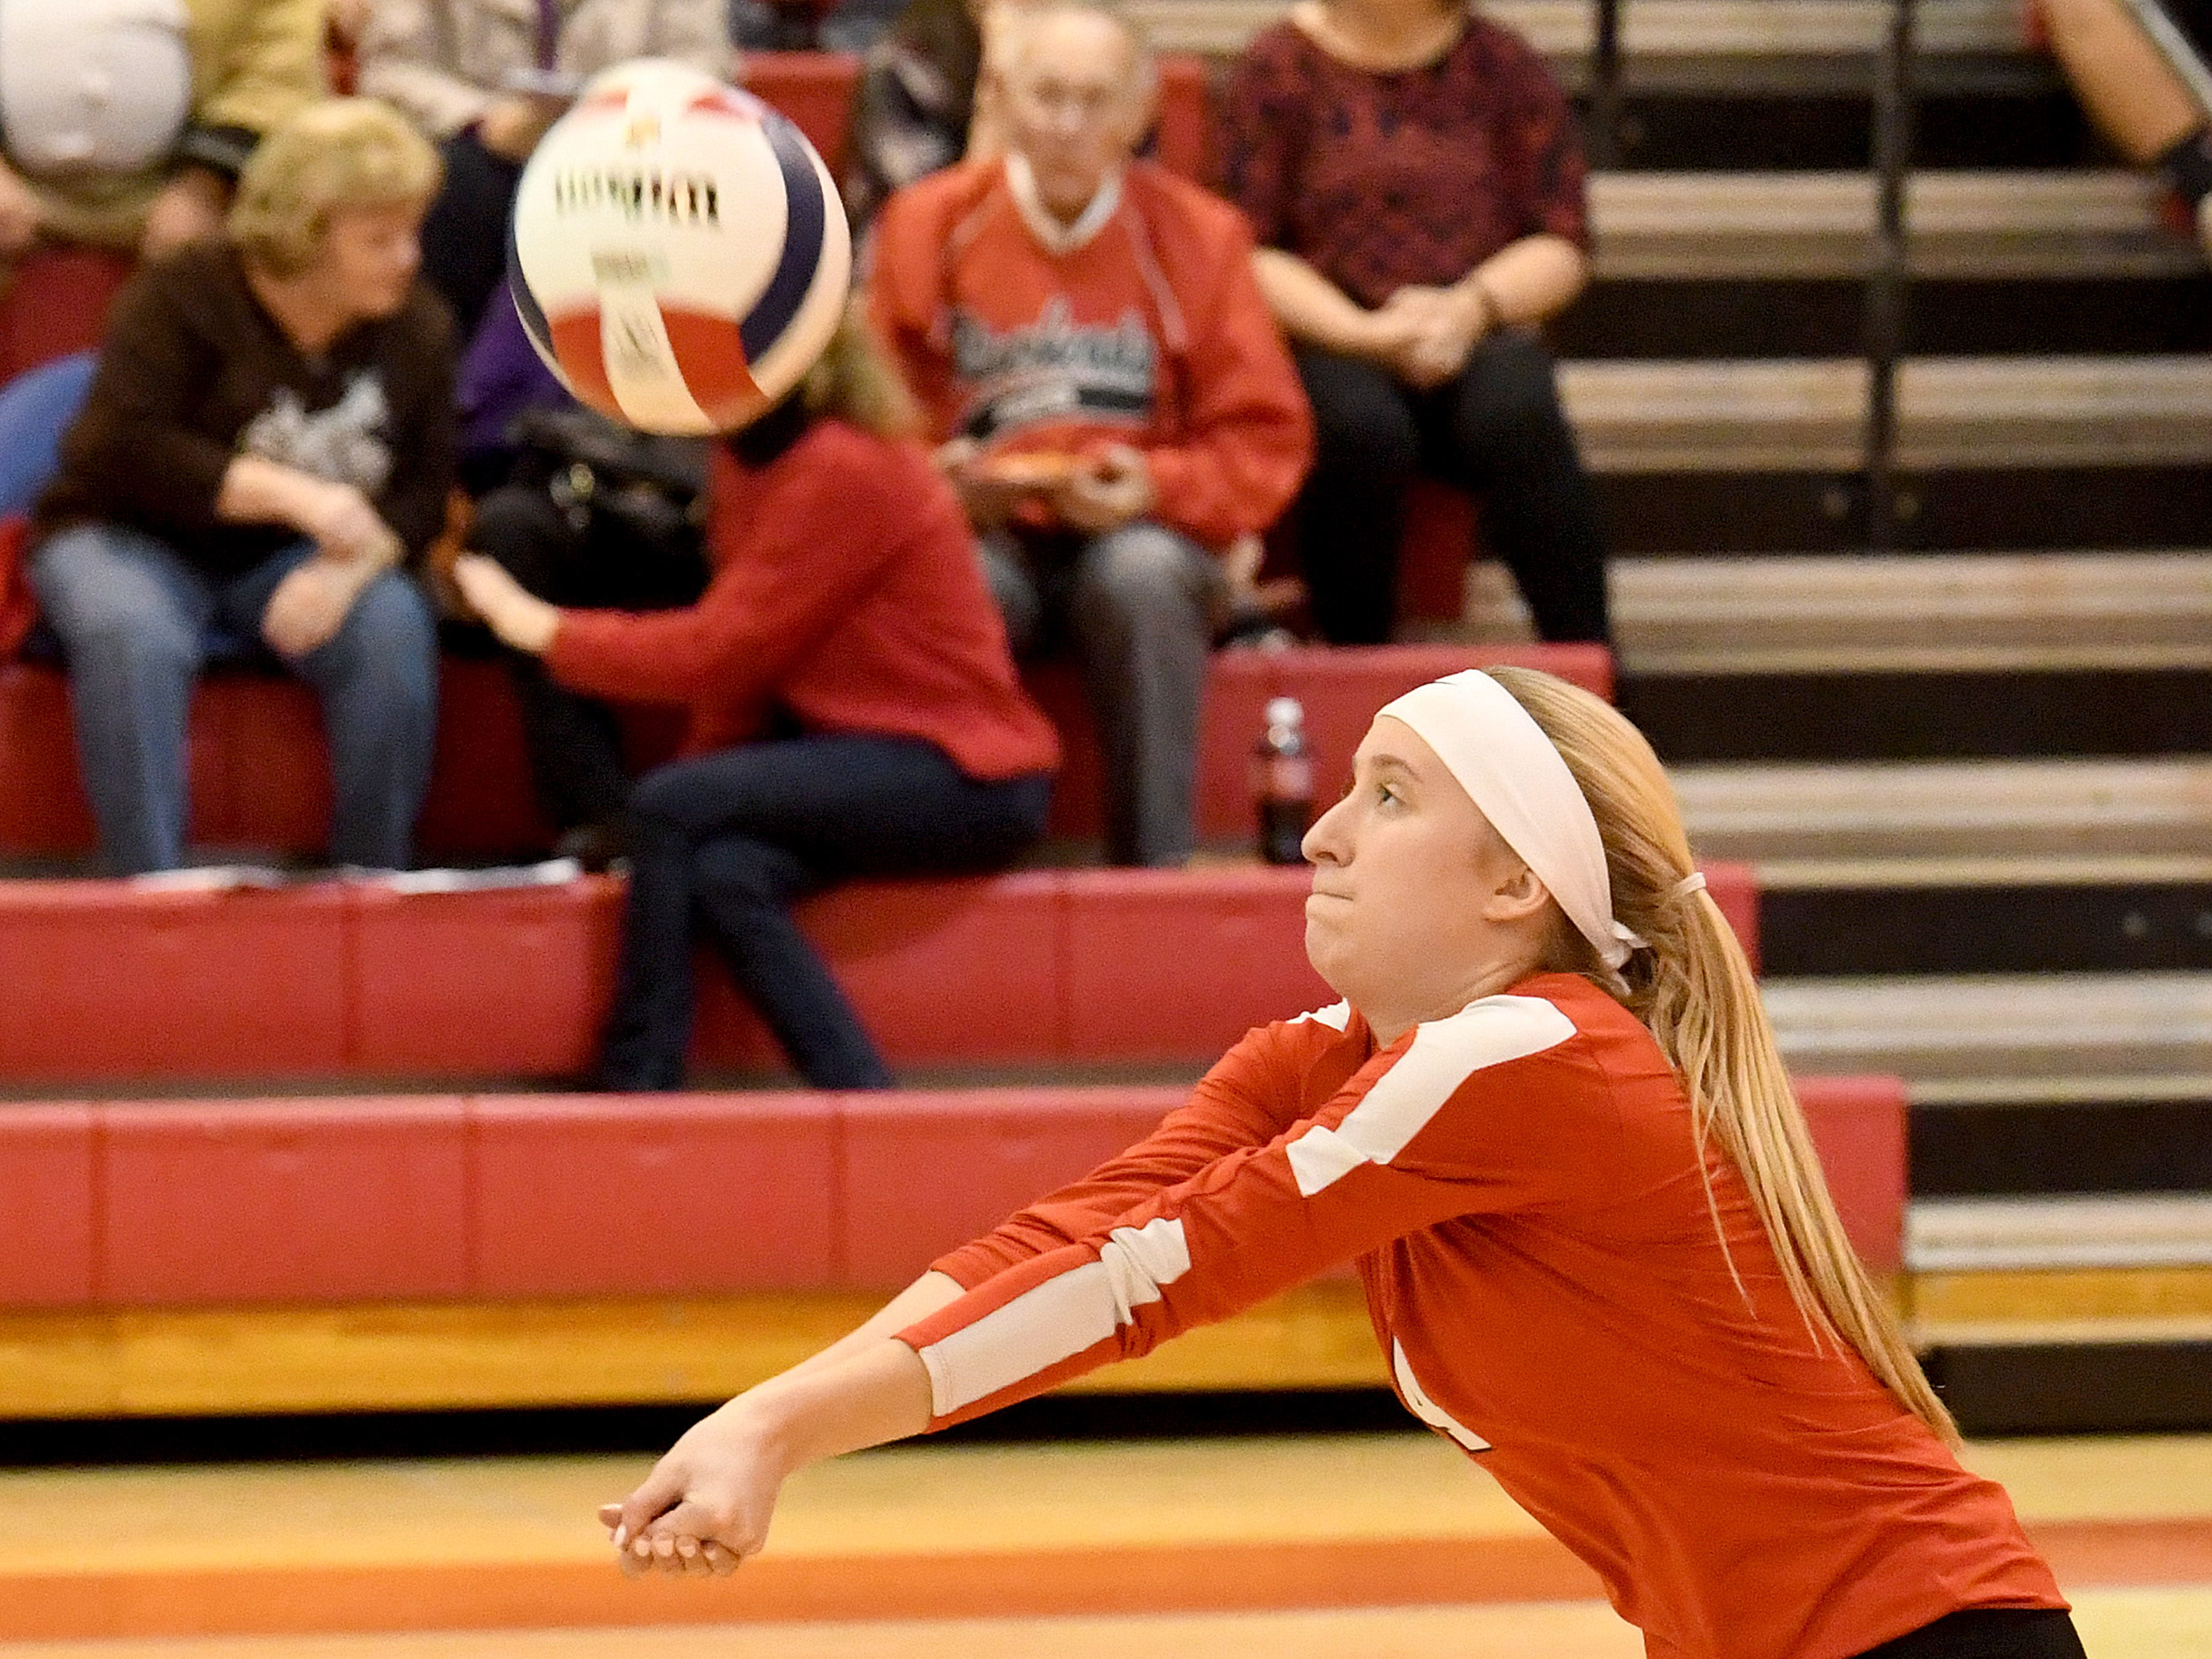 Riverheads' Emma Tomlinson bumps the ball during the Region 1B volleyball championship played in Greenville on Wednesday, Nov. 7, 2018.